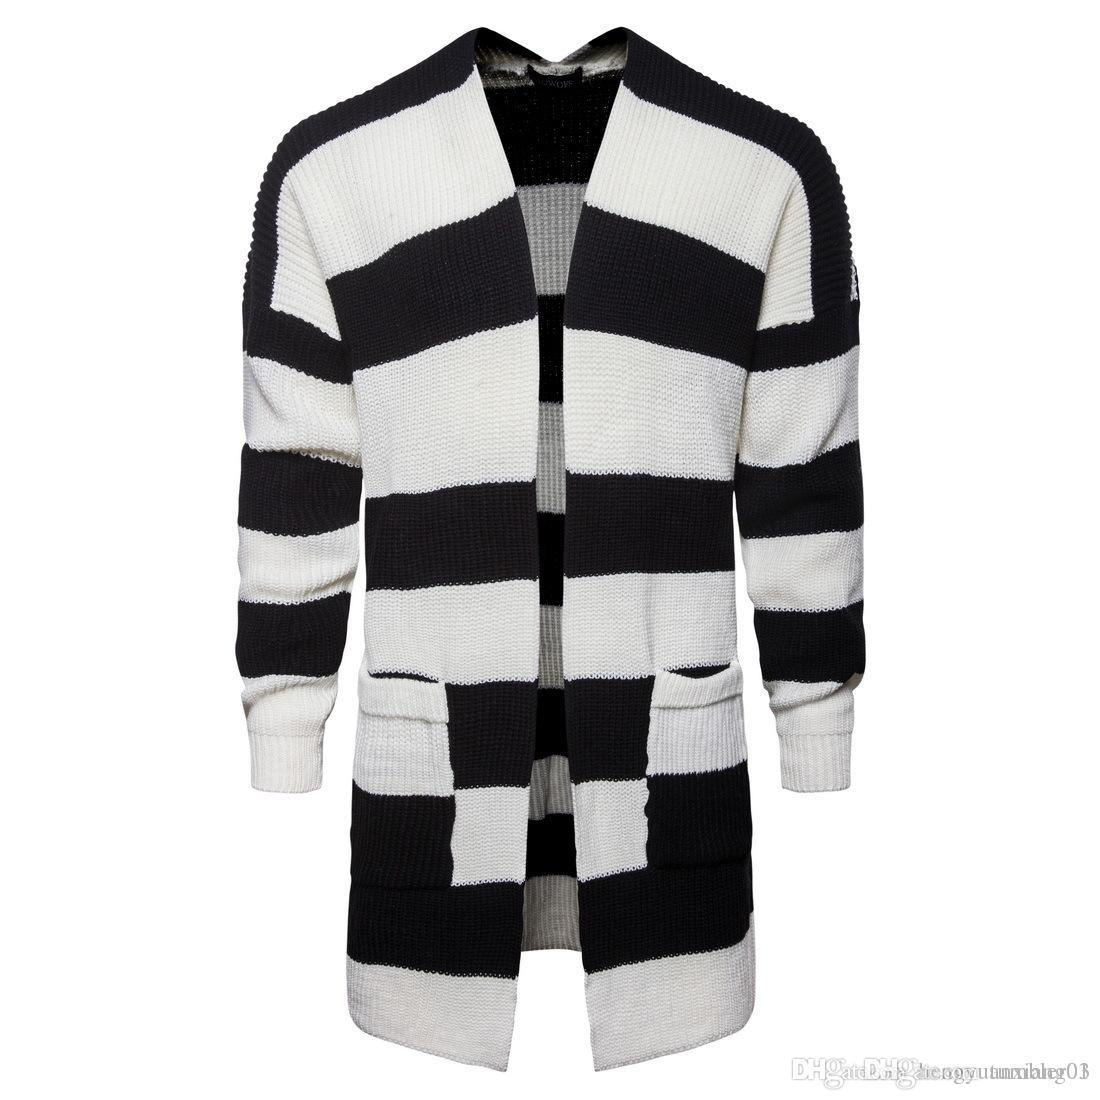 a2cf7466bbf 2018 European and American autumn men s cardigan jacket, black and white  striped knitted sweater wholesale and retail